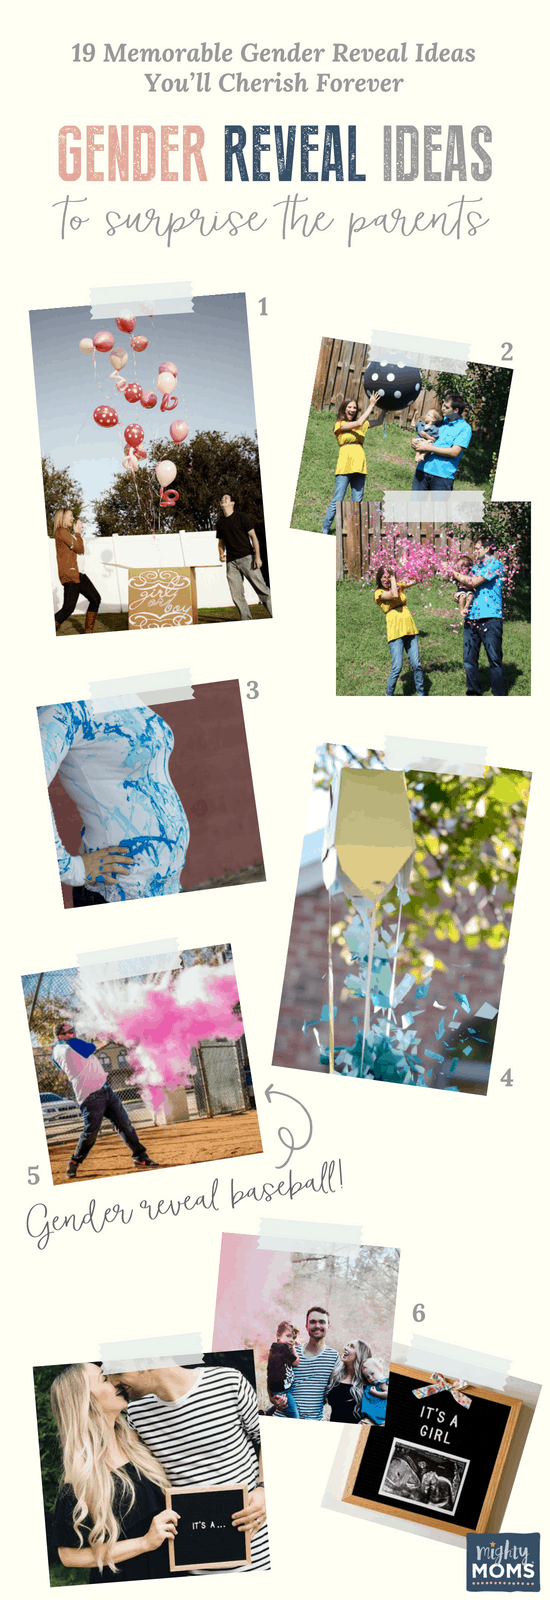 Gender Reveal Ideas for the Parents - MightyMoms.club